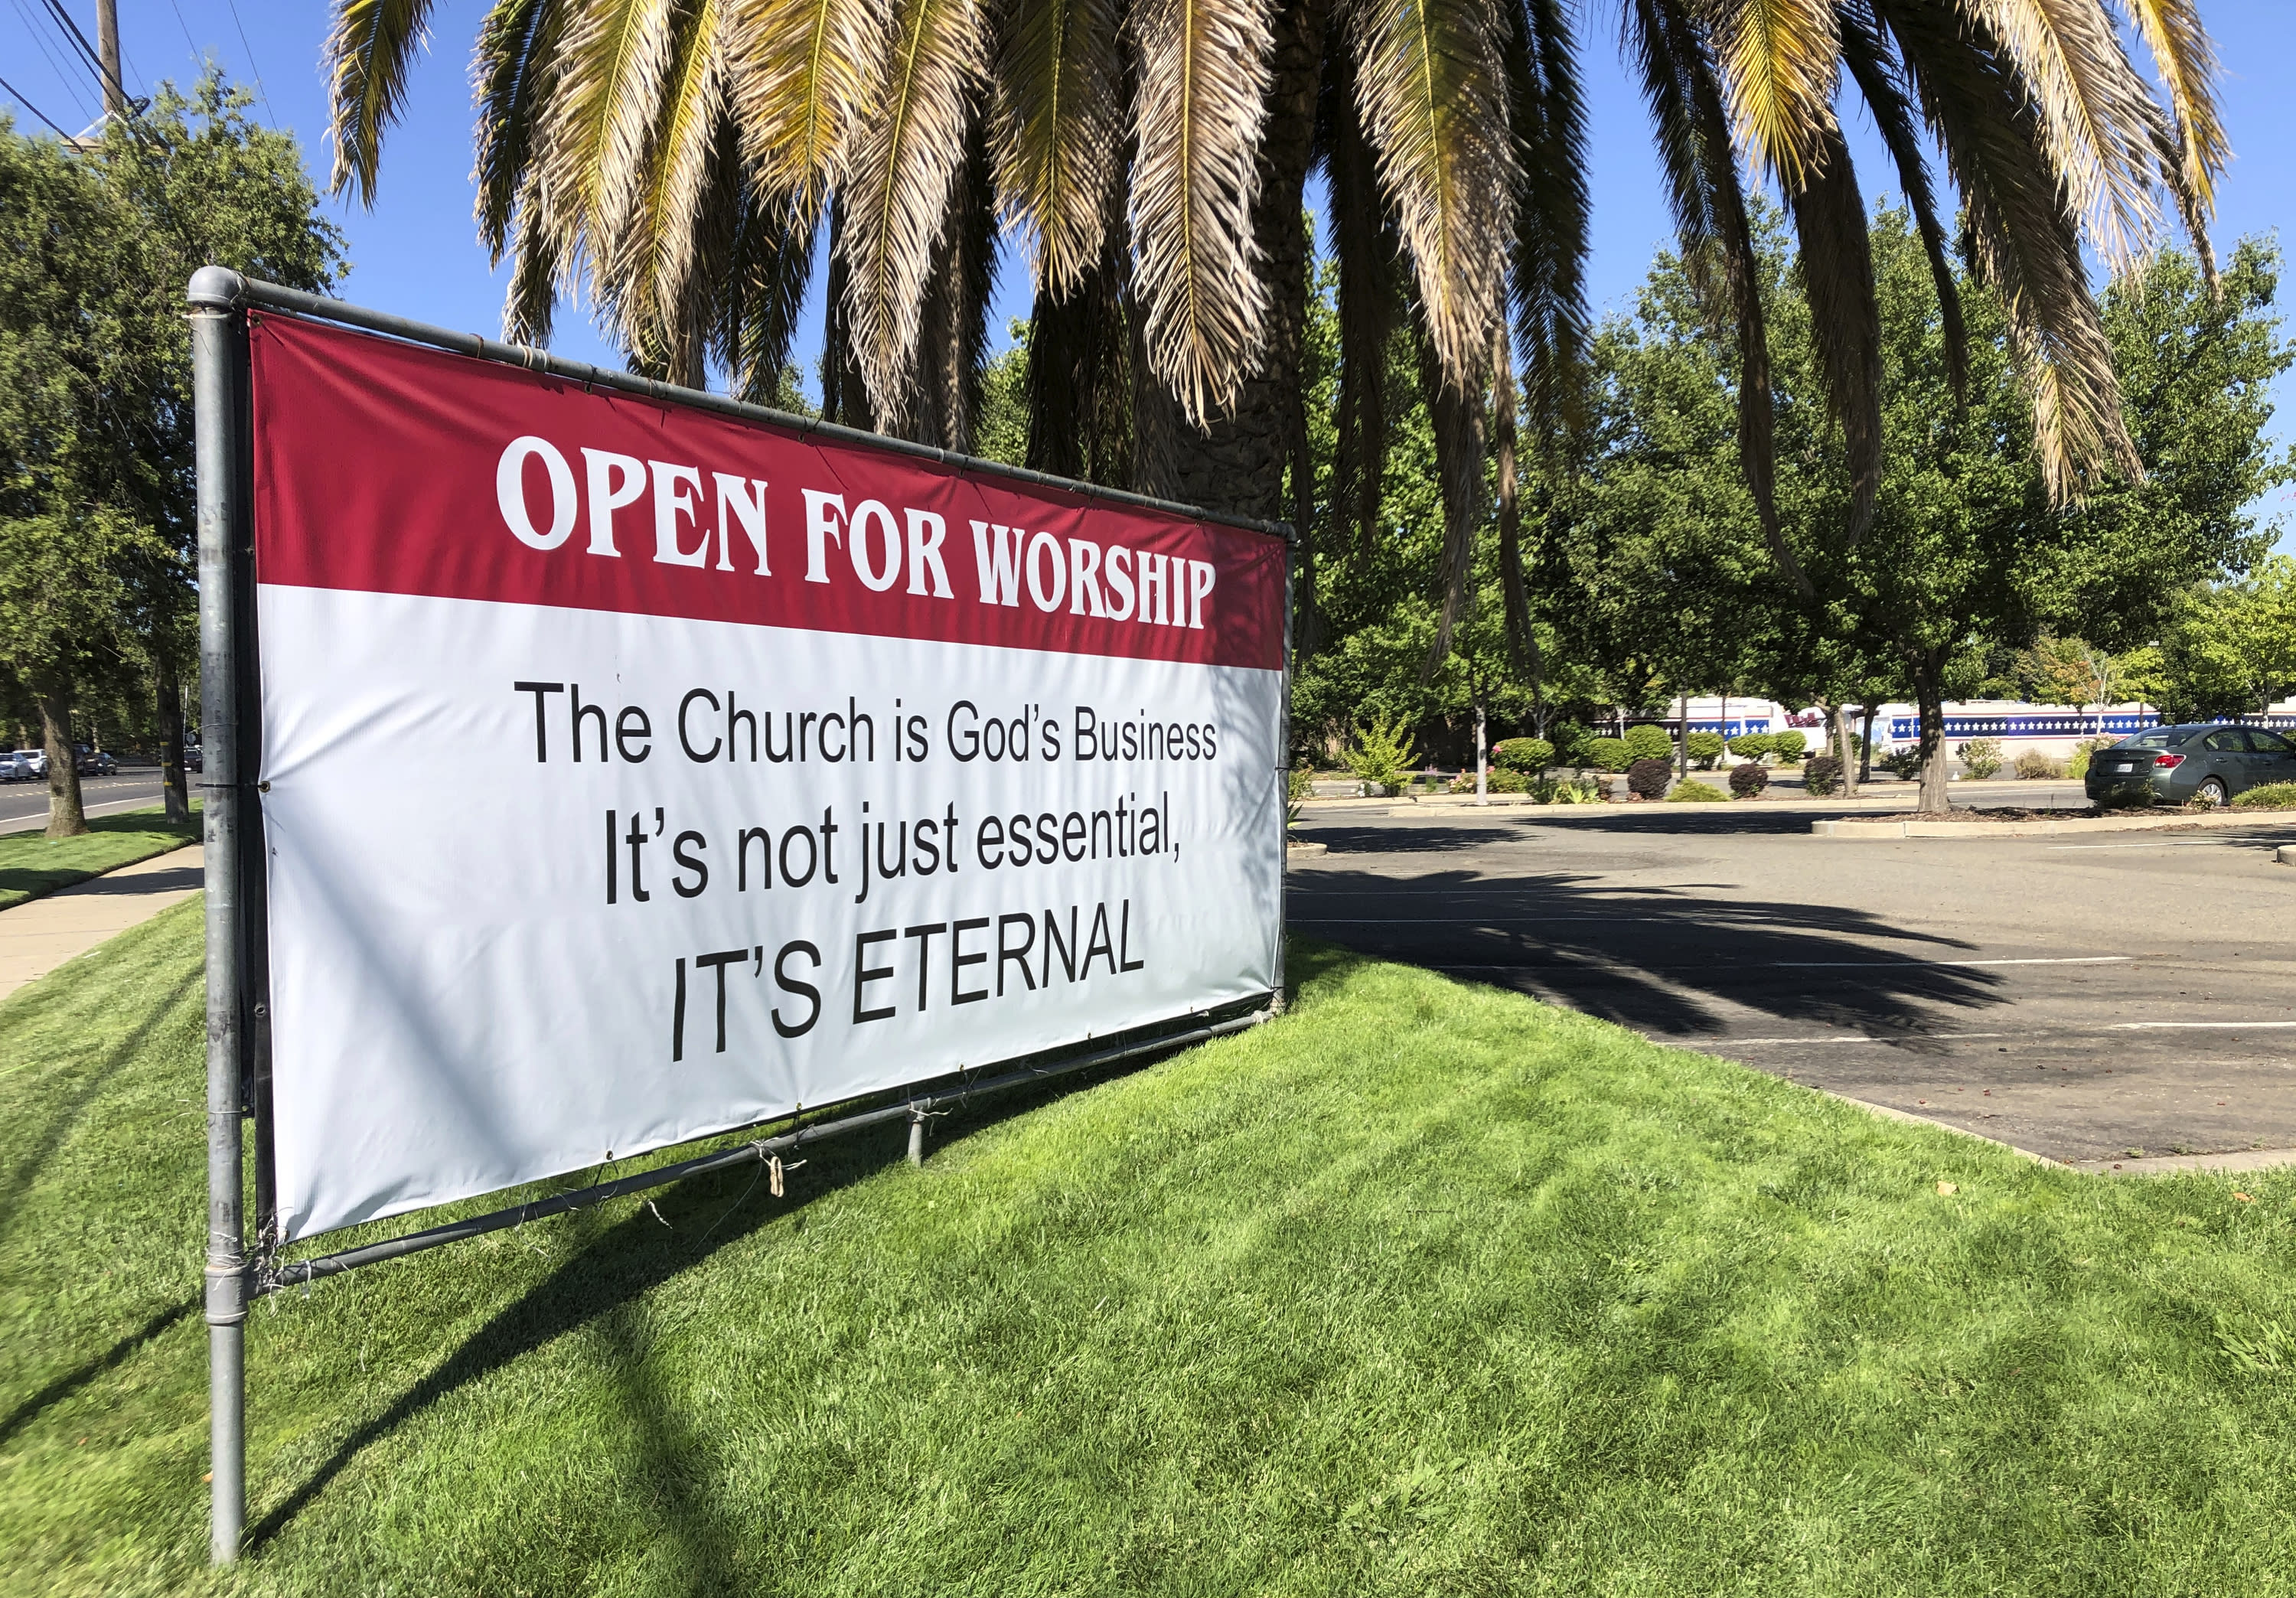 """An """"Open for Worship"""" banner is posted outside the Crossroads Community Church in Yuba City, Calif., Thursday, July 9, 2020. Sutter County was one of the first counties to reopen its economy when it defied Gov. Gavin Newsom's stay-at-home order in May to allow restaurants, hair salons, gyms and shopping malls to reopen. But Thursday, the county was added to a state watch list because of its rising number of coronavirus cases and hospitalizations. (AP Photo/Adam Beam)"""